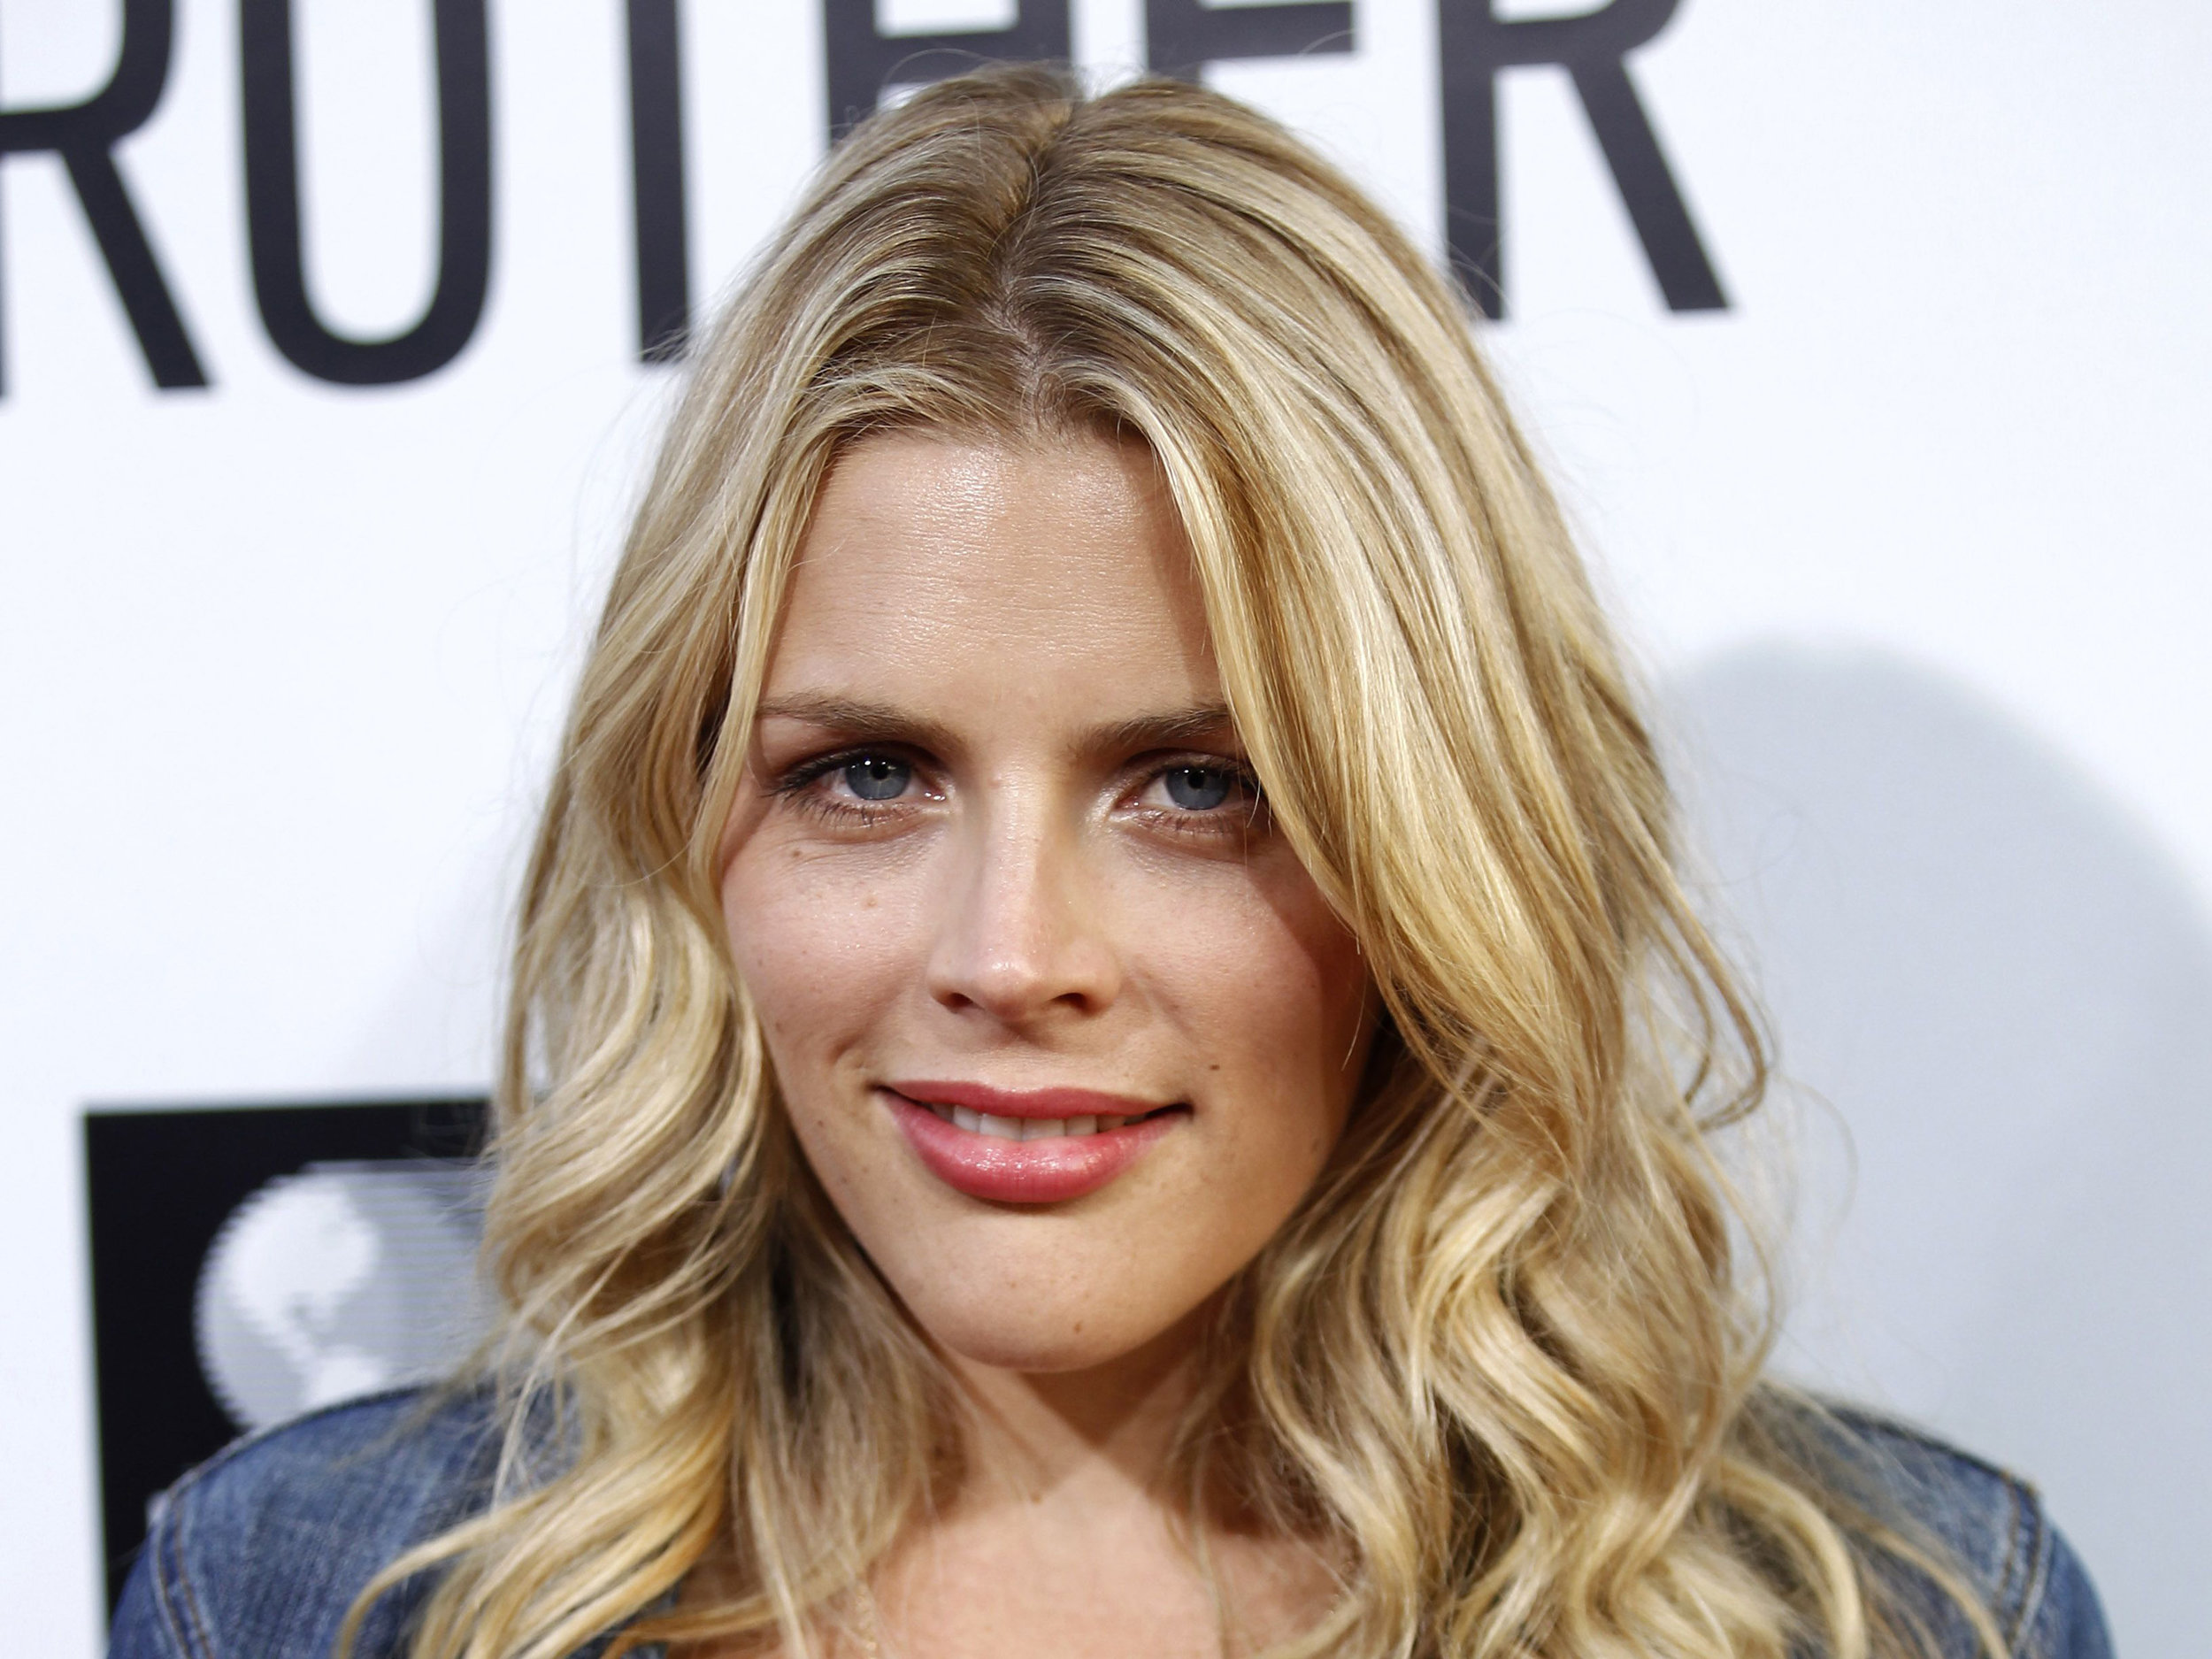 Busy Philipps - Actress